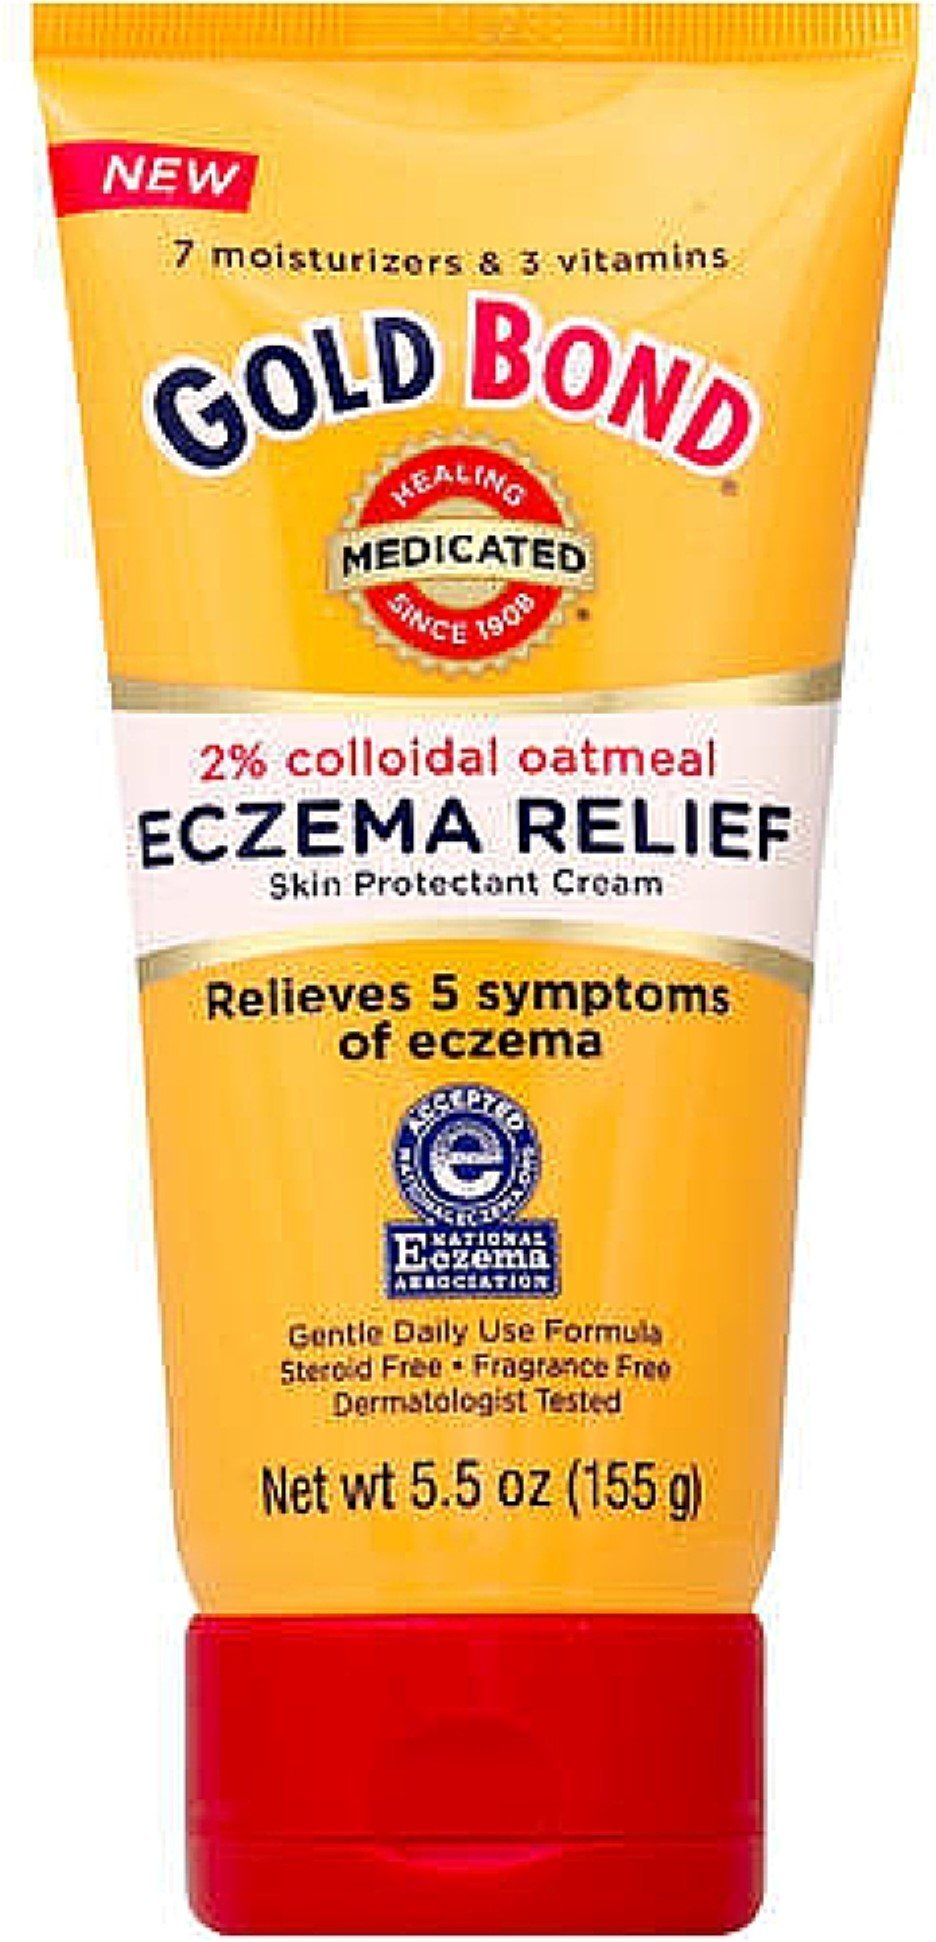 Gold Bond Eczema Relief Cream, 2% Colloidal Oatmeal, 5.5 oz, Pack of 2 by Gold Bond